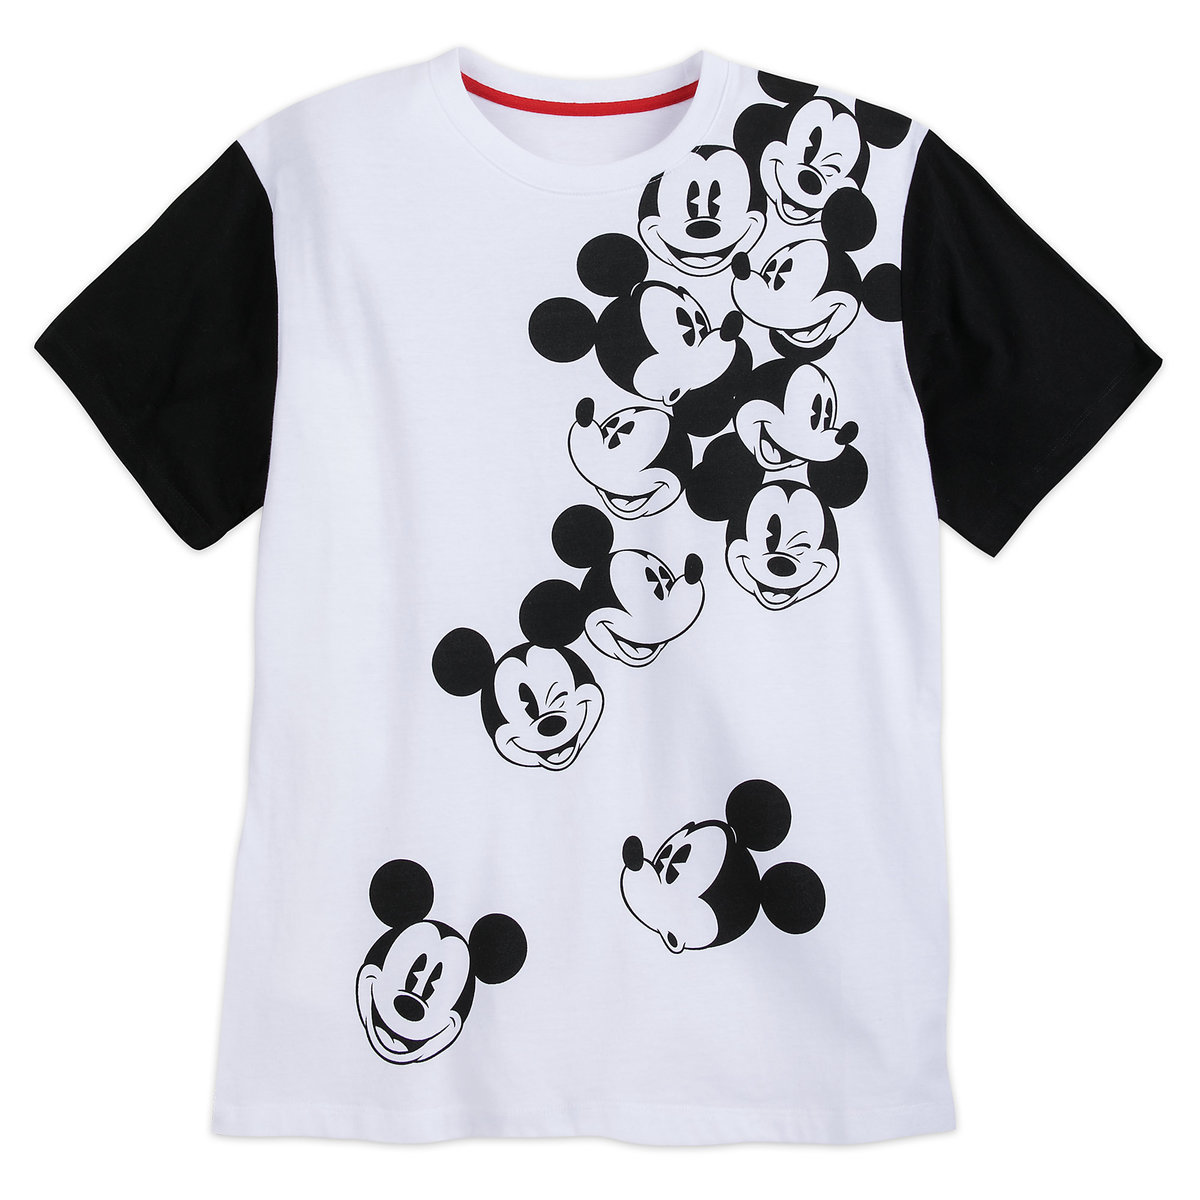 348d7dca340 Product Image of Mickey Mouse Fashion T-Shirt for Men   1